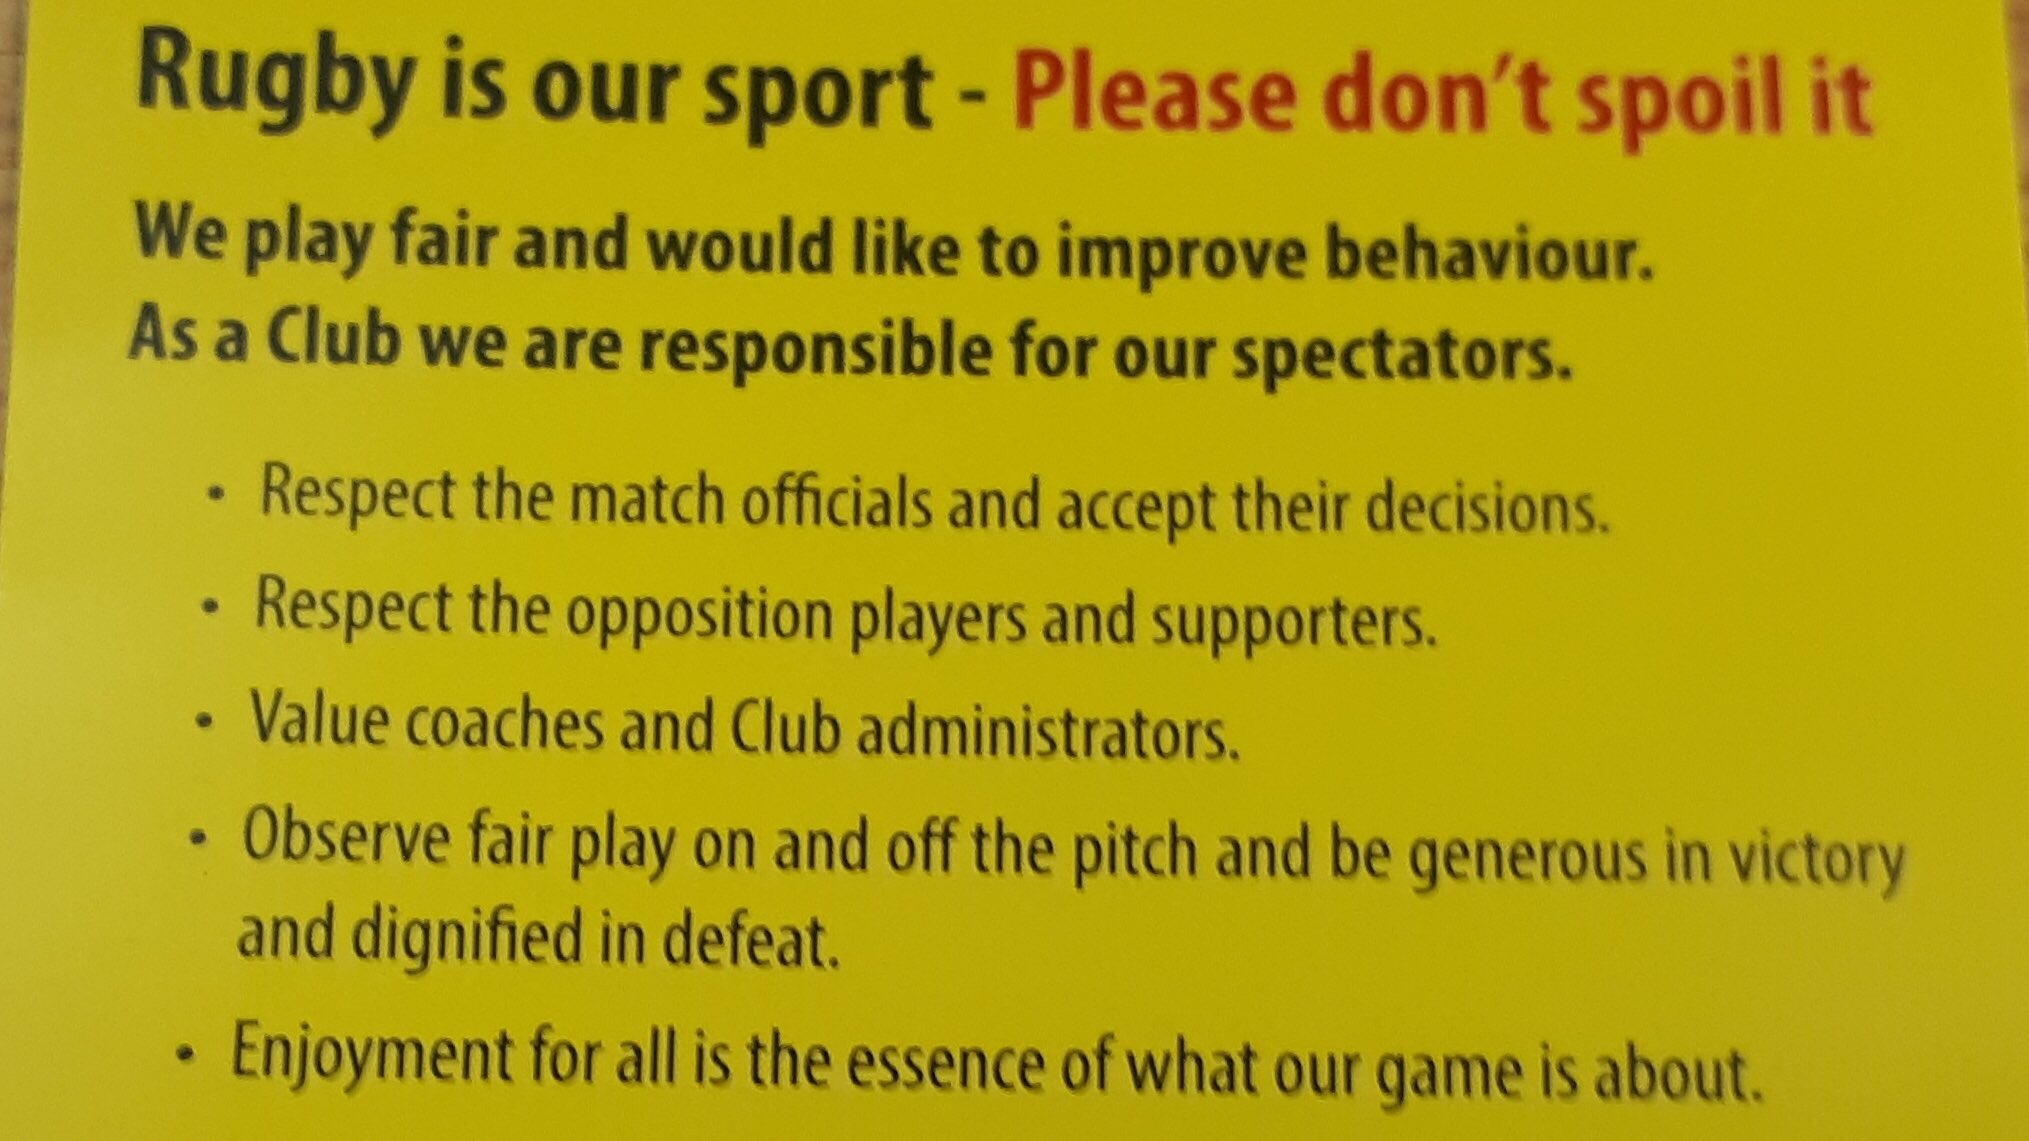 North Midlands pitch side behaviour initiative